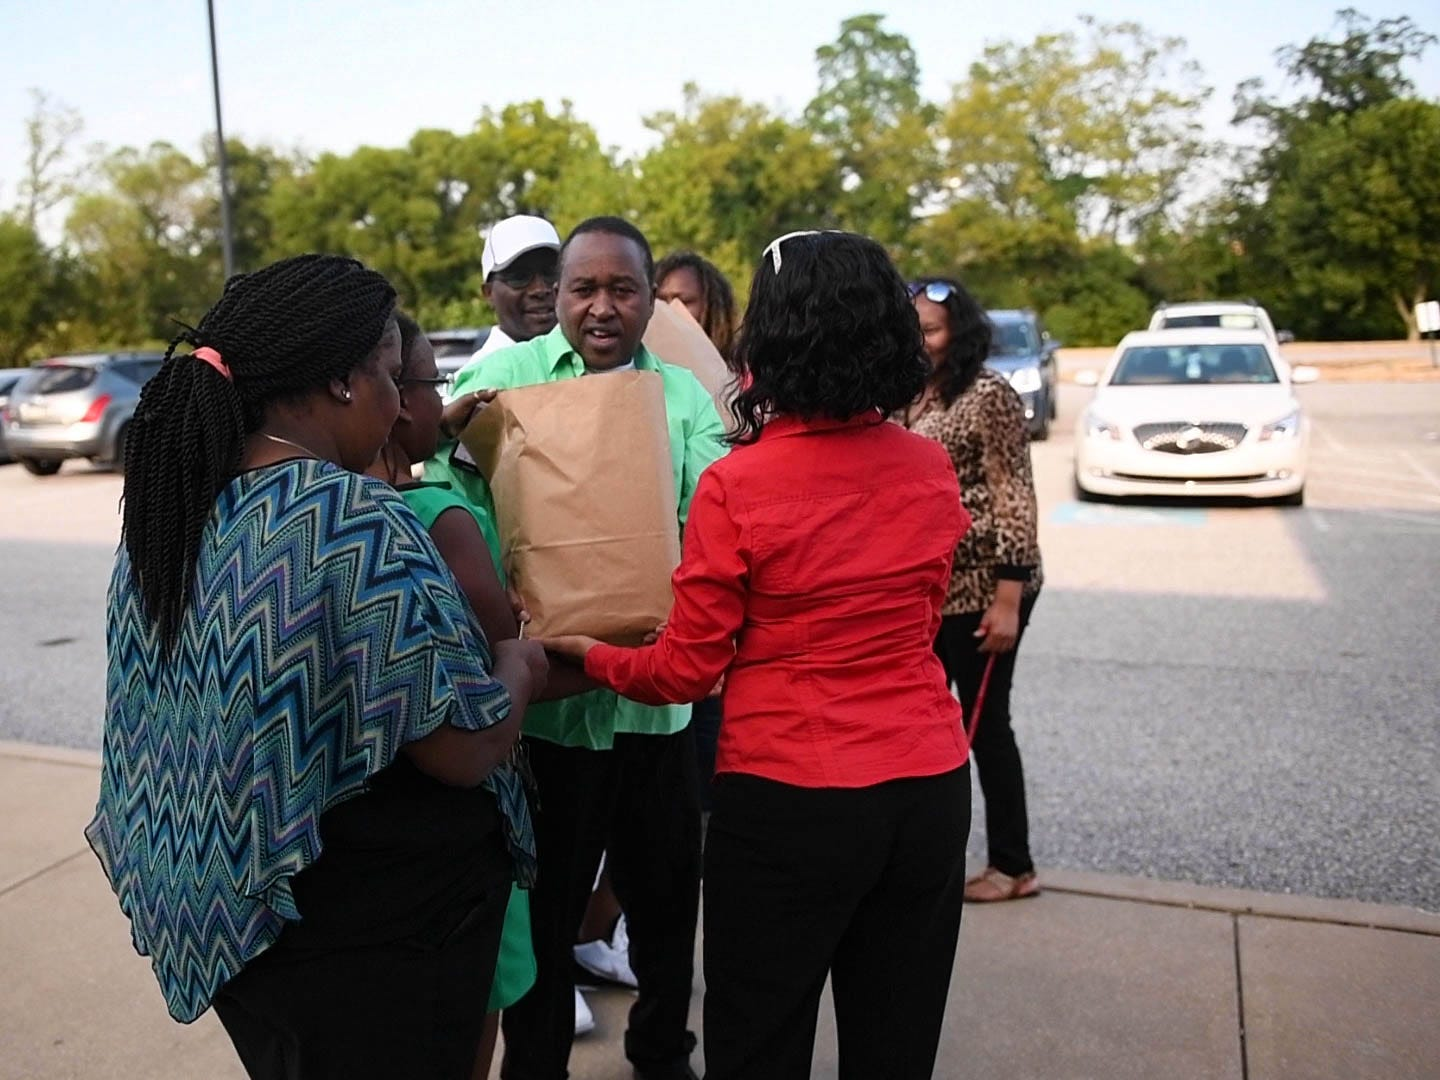 Gichuhi's family help carry two brown bags filled with Sammy's personal effects to the car.